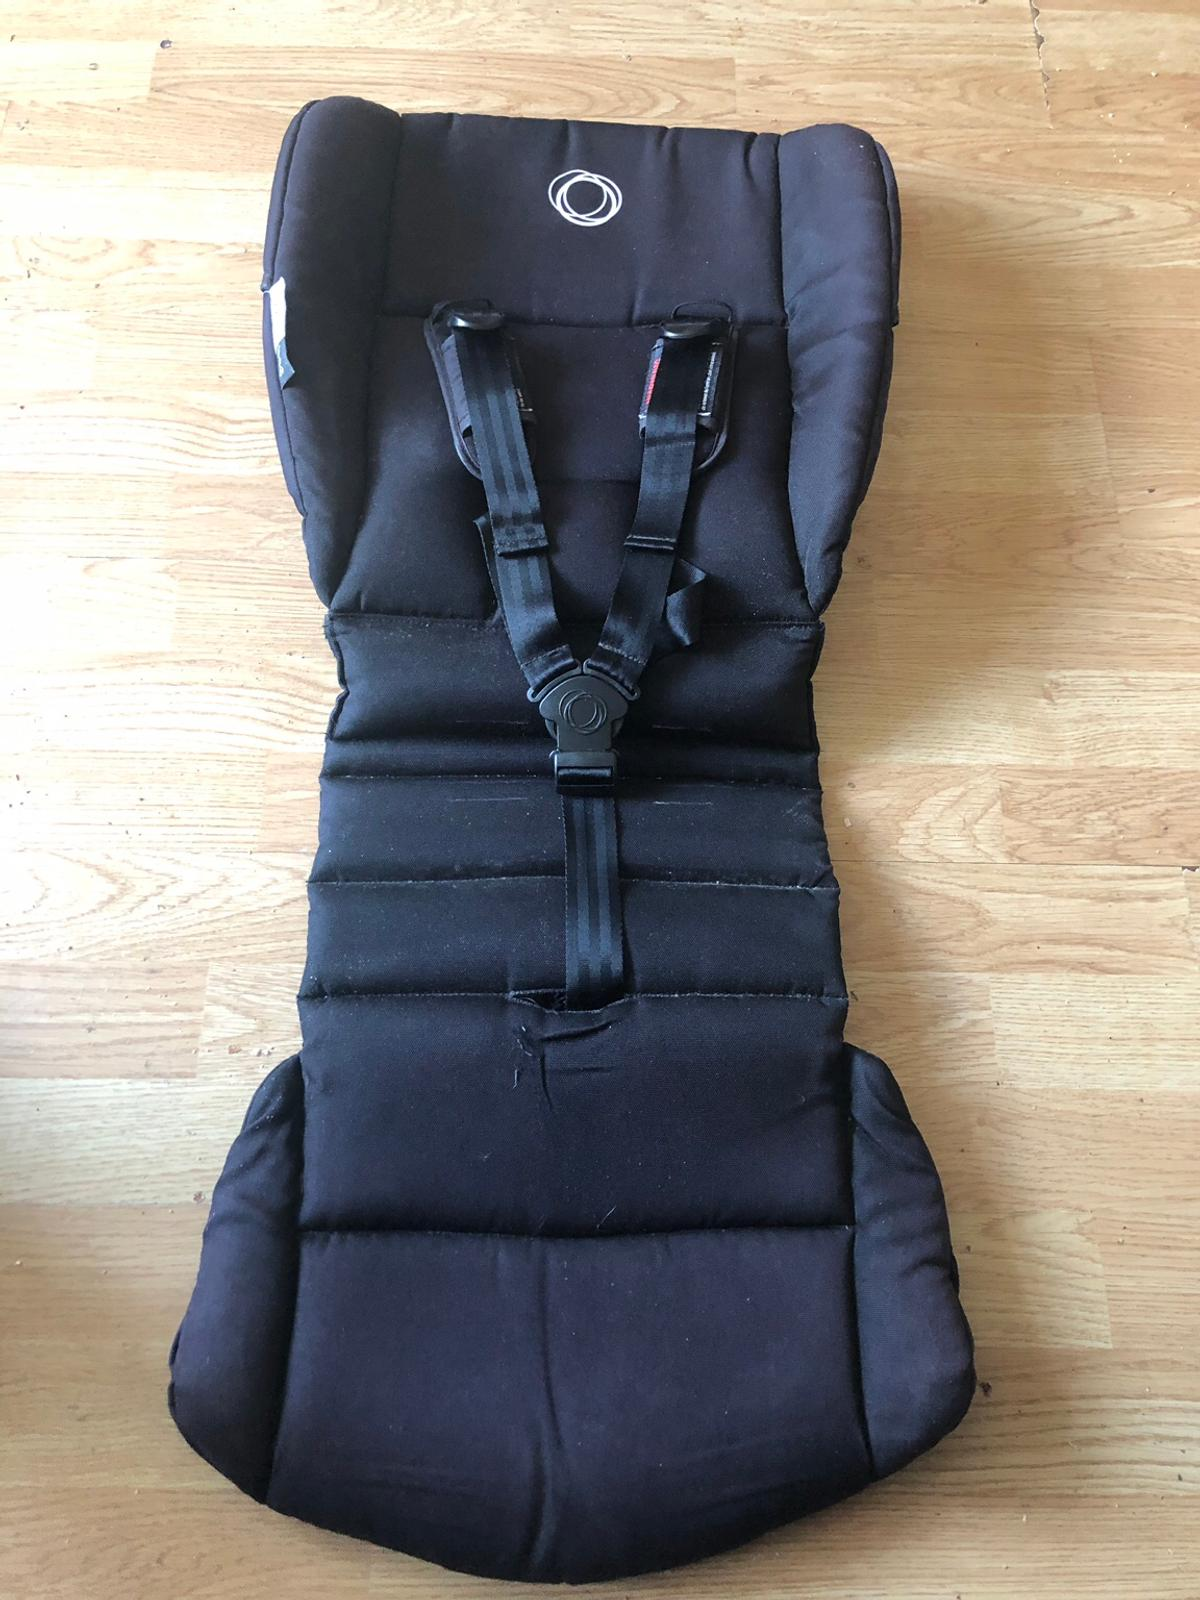 Bugaboo bee seat in good condition comes with straps